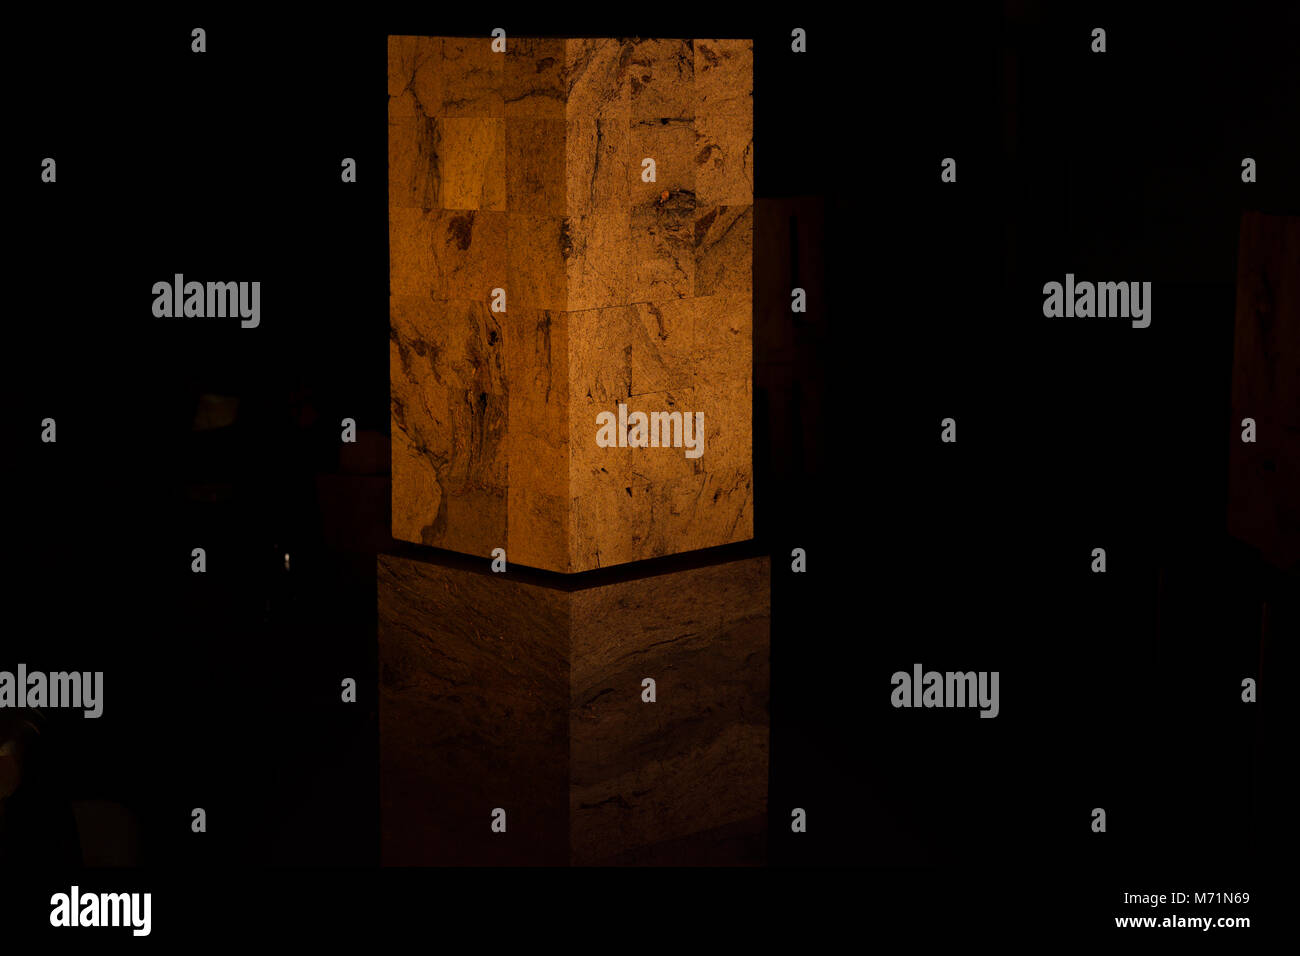 Edgars Ameriks peat art gallery / artwork - Water - Stock Image